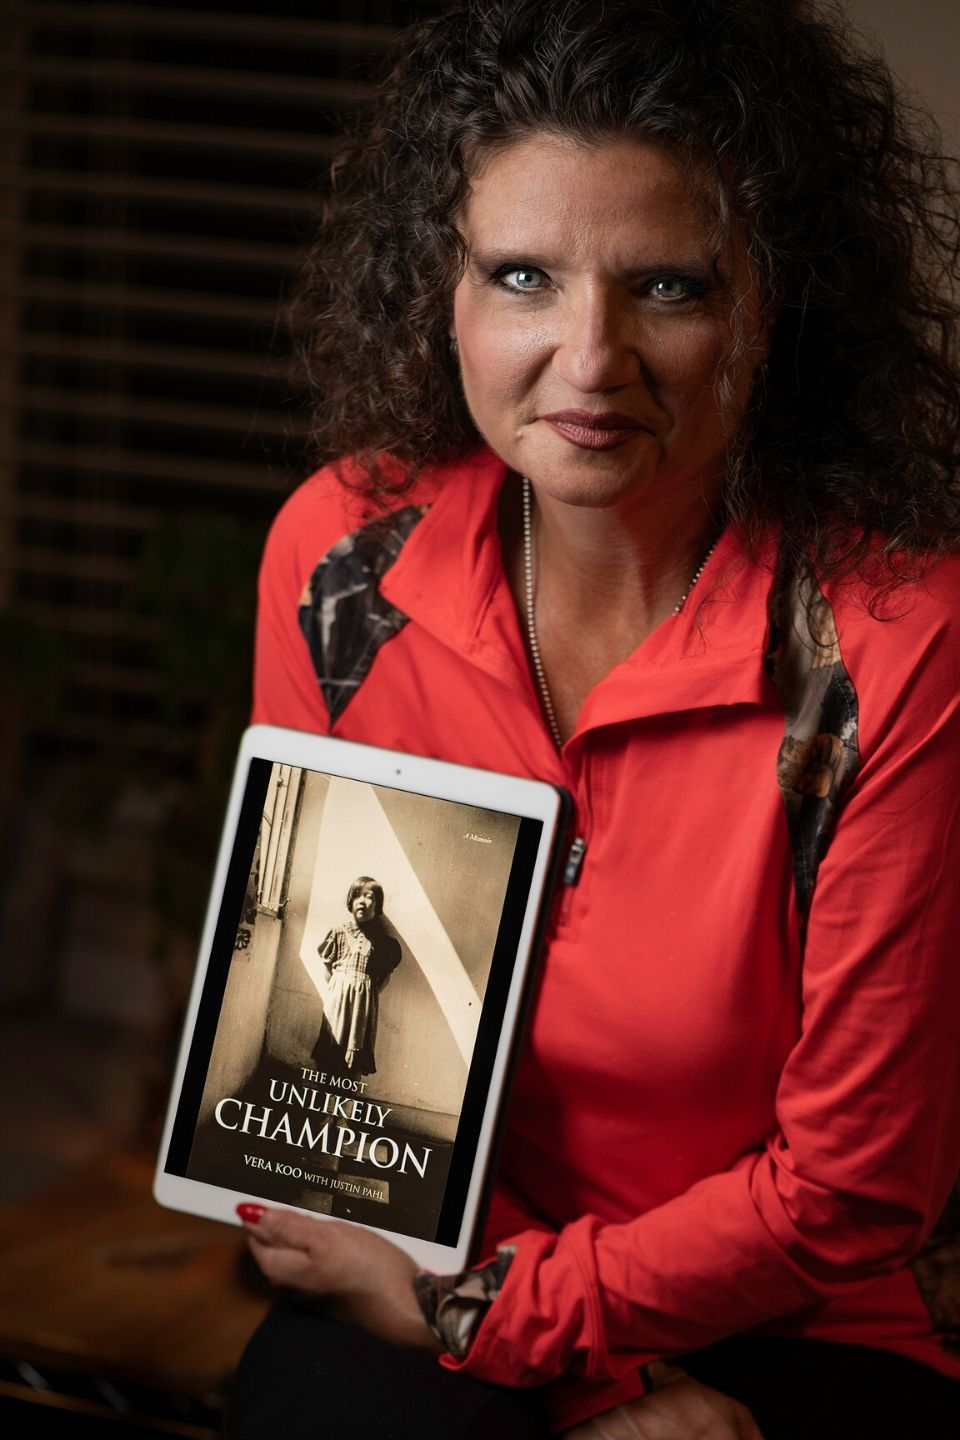 Jennifer Hansen Reviews Vera Koo's Book, The Most Unlikely Champion.